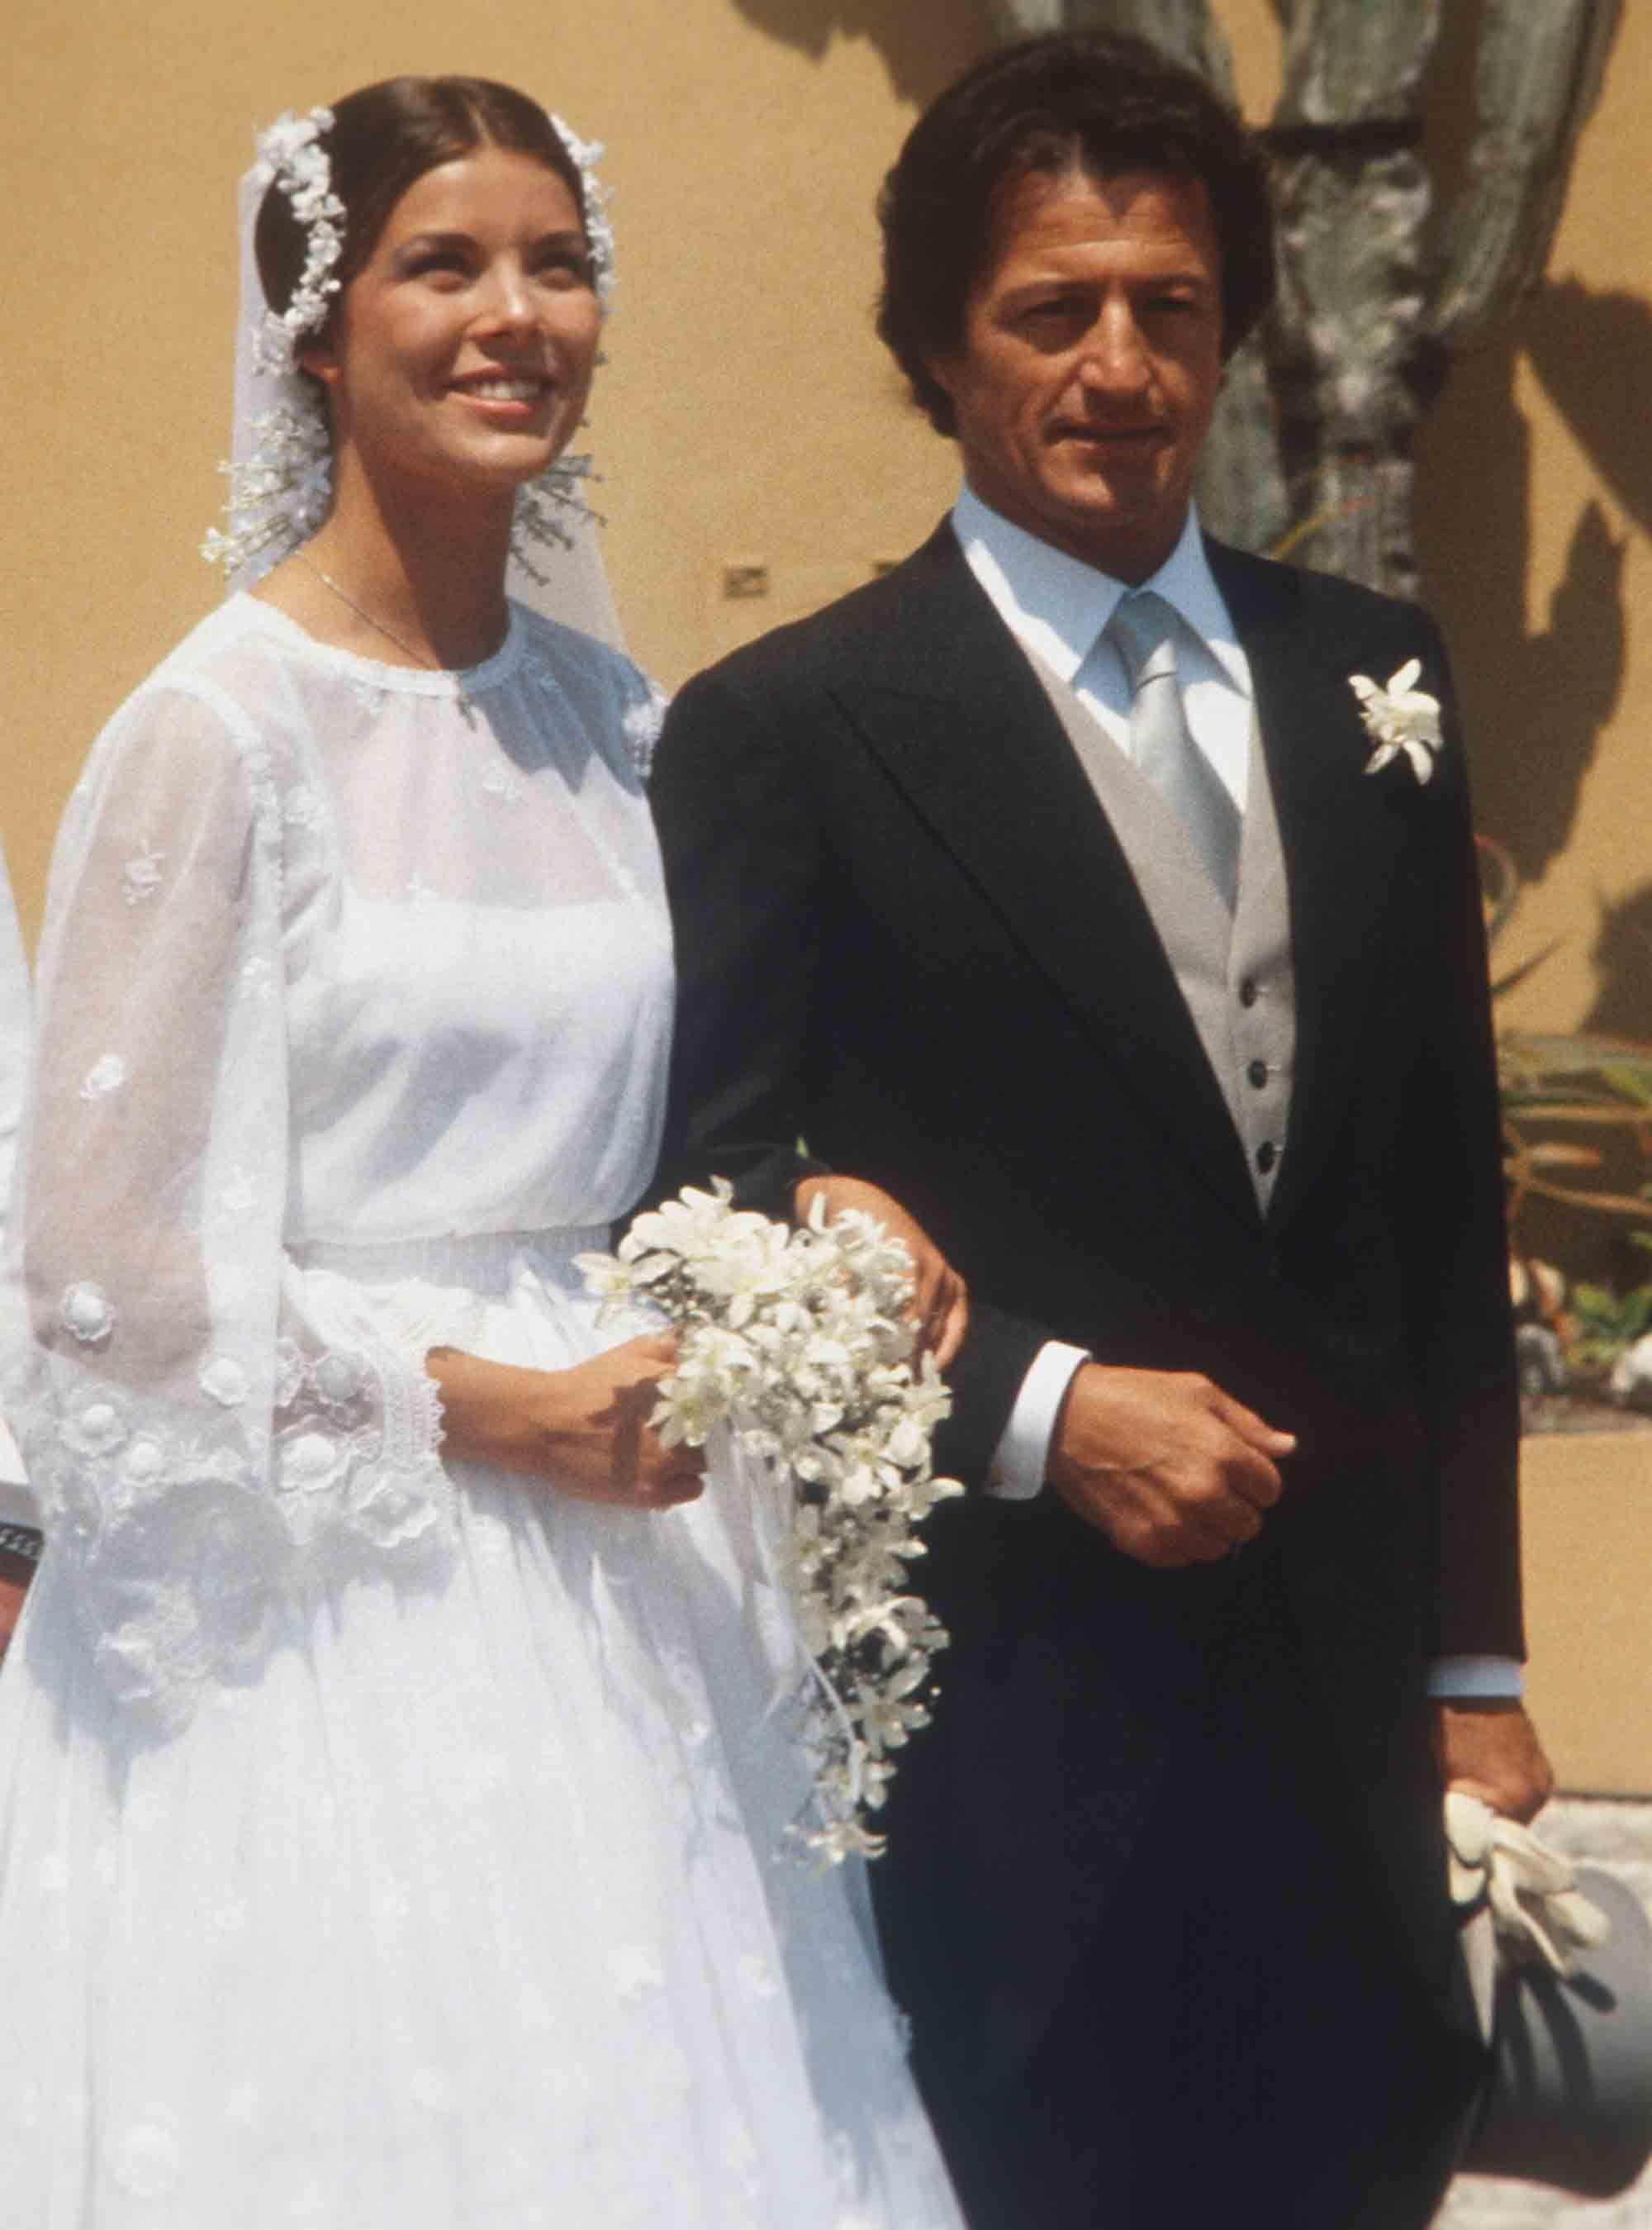 15 Most Gorgeous Royal Wedding Gowns of All Time | Royal wedding ...